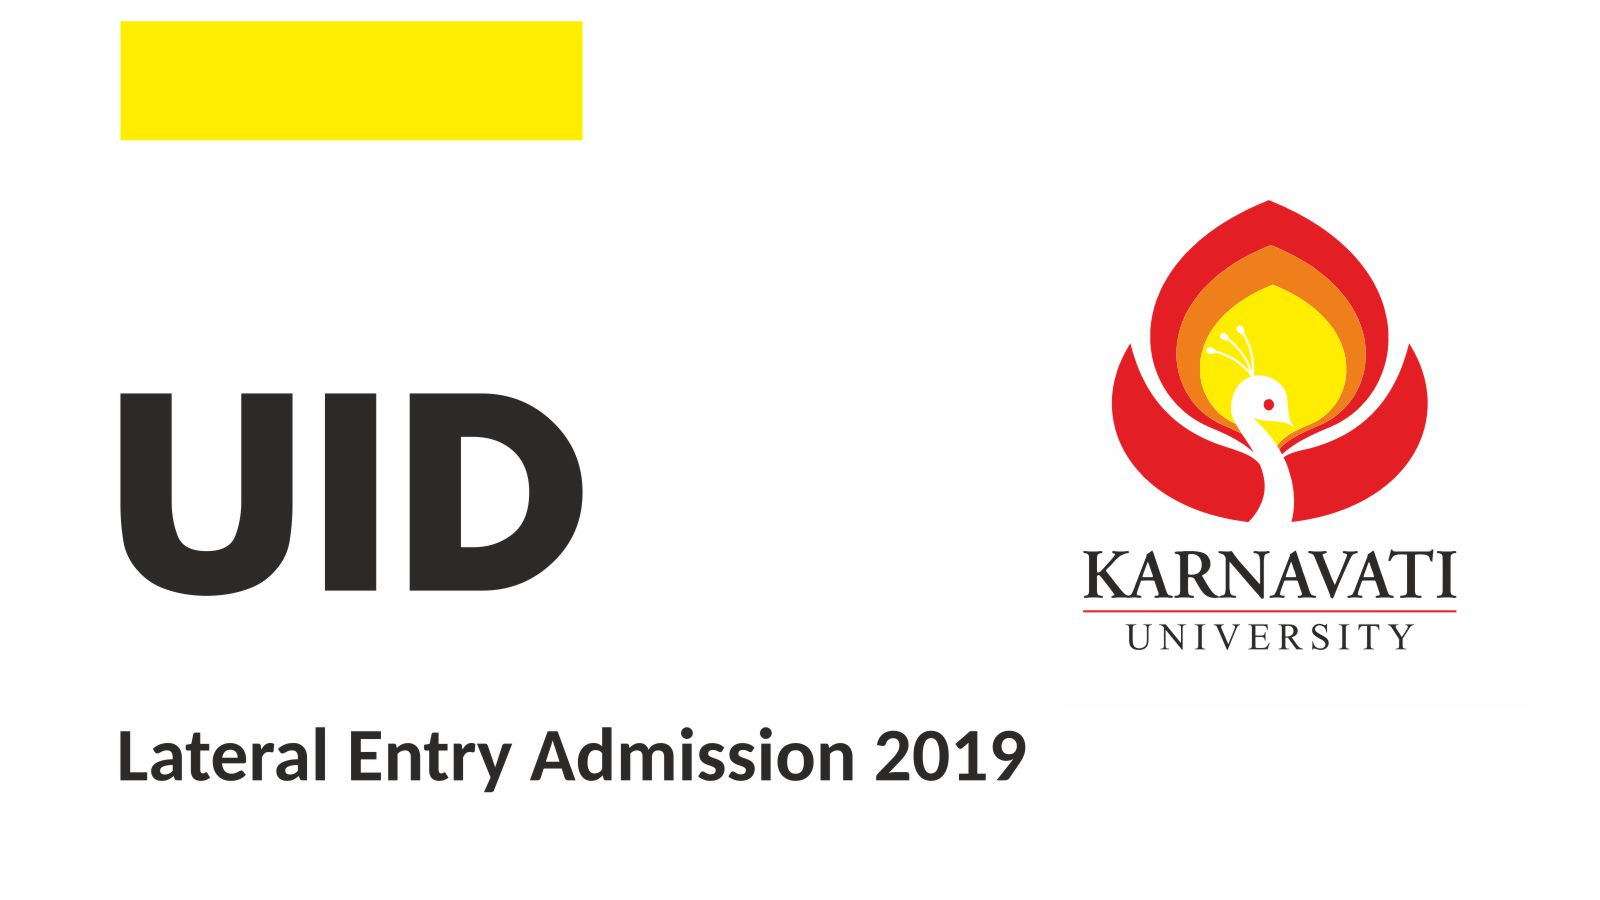 UID – Lateral Entry Admission 2019 Image